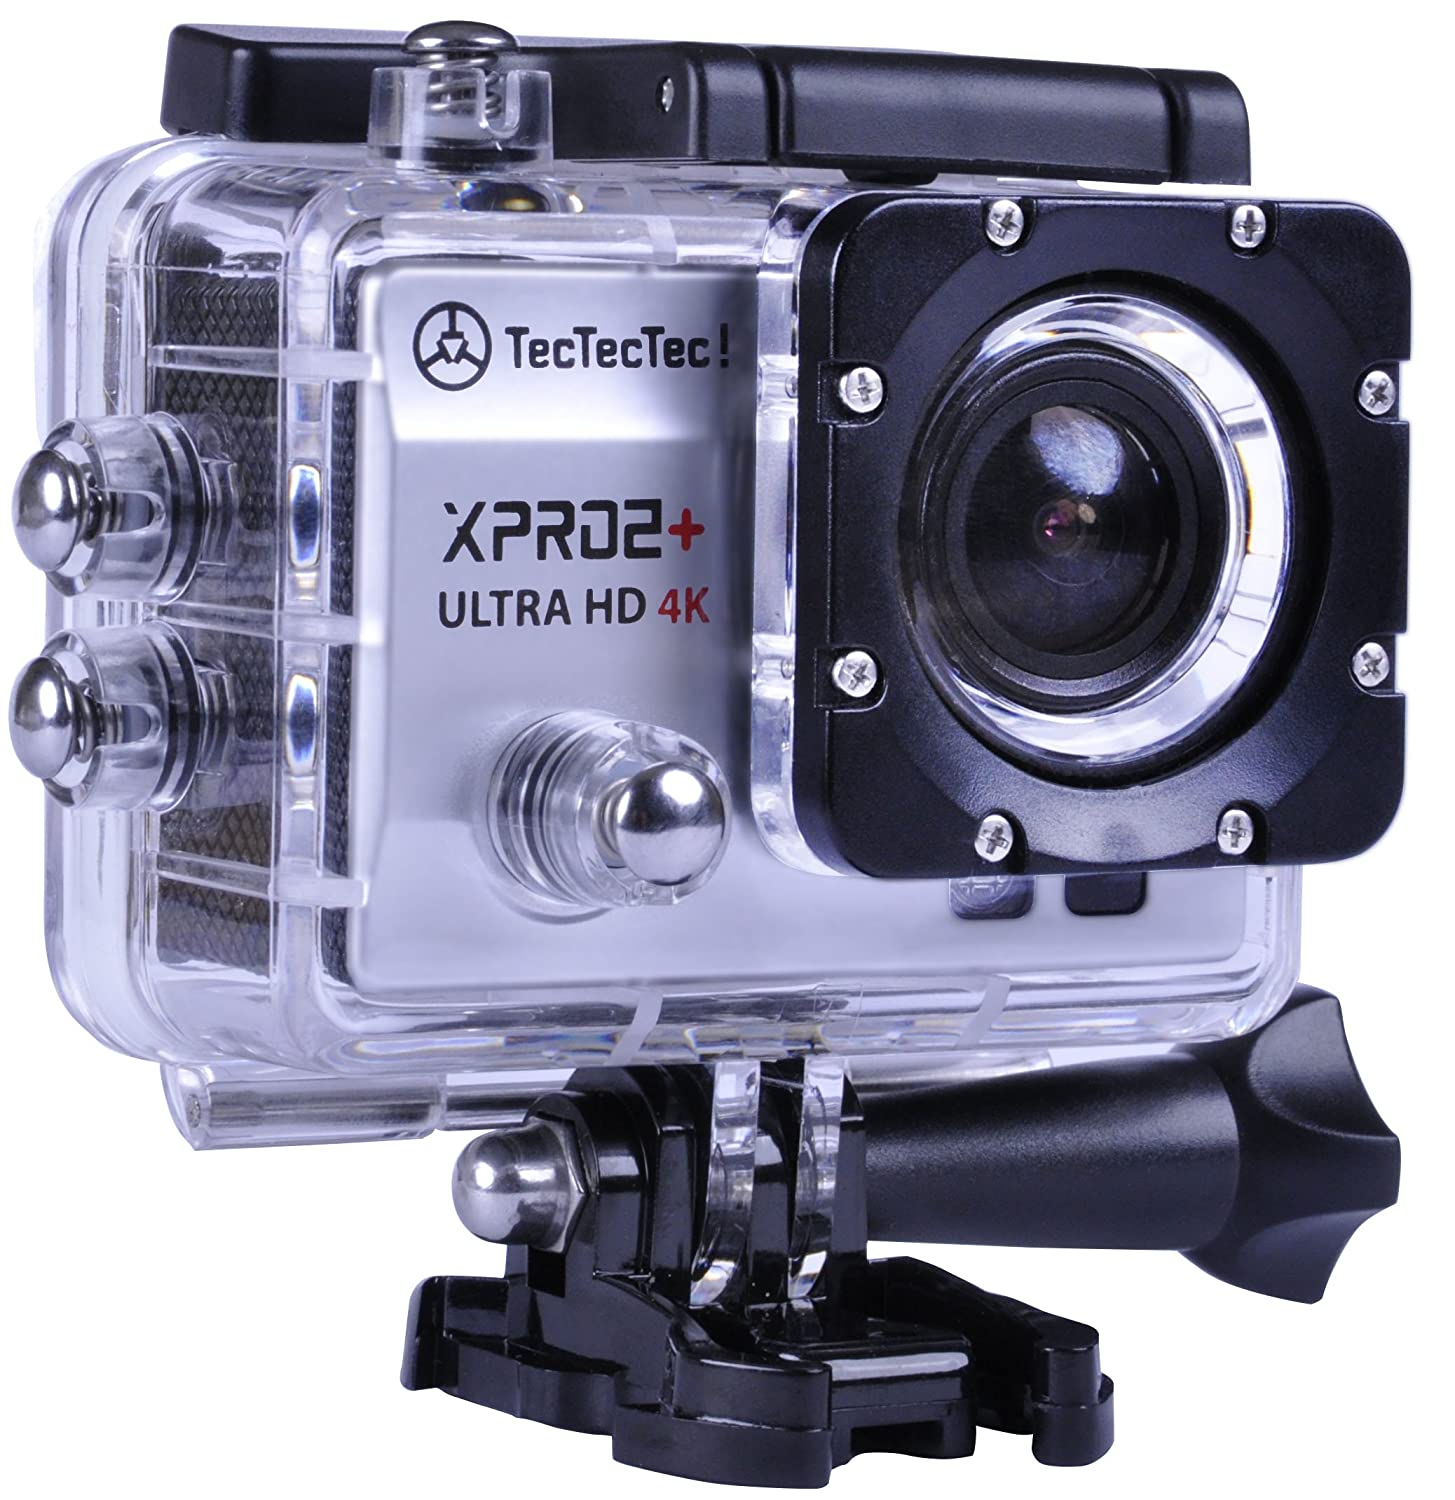 TecTecTec Action Camera 4K XPRO2+ WiFi Waterproof Sport Cam - Silver